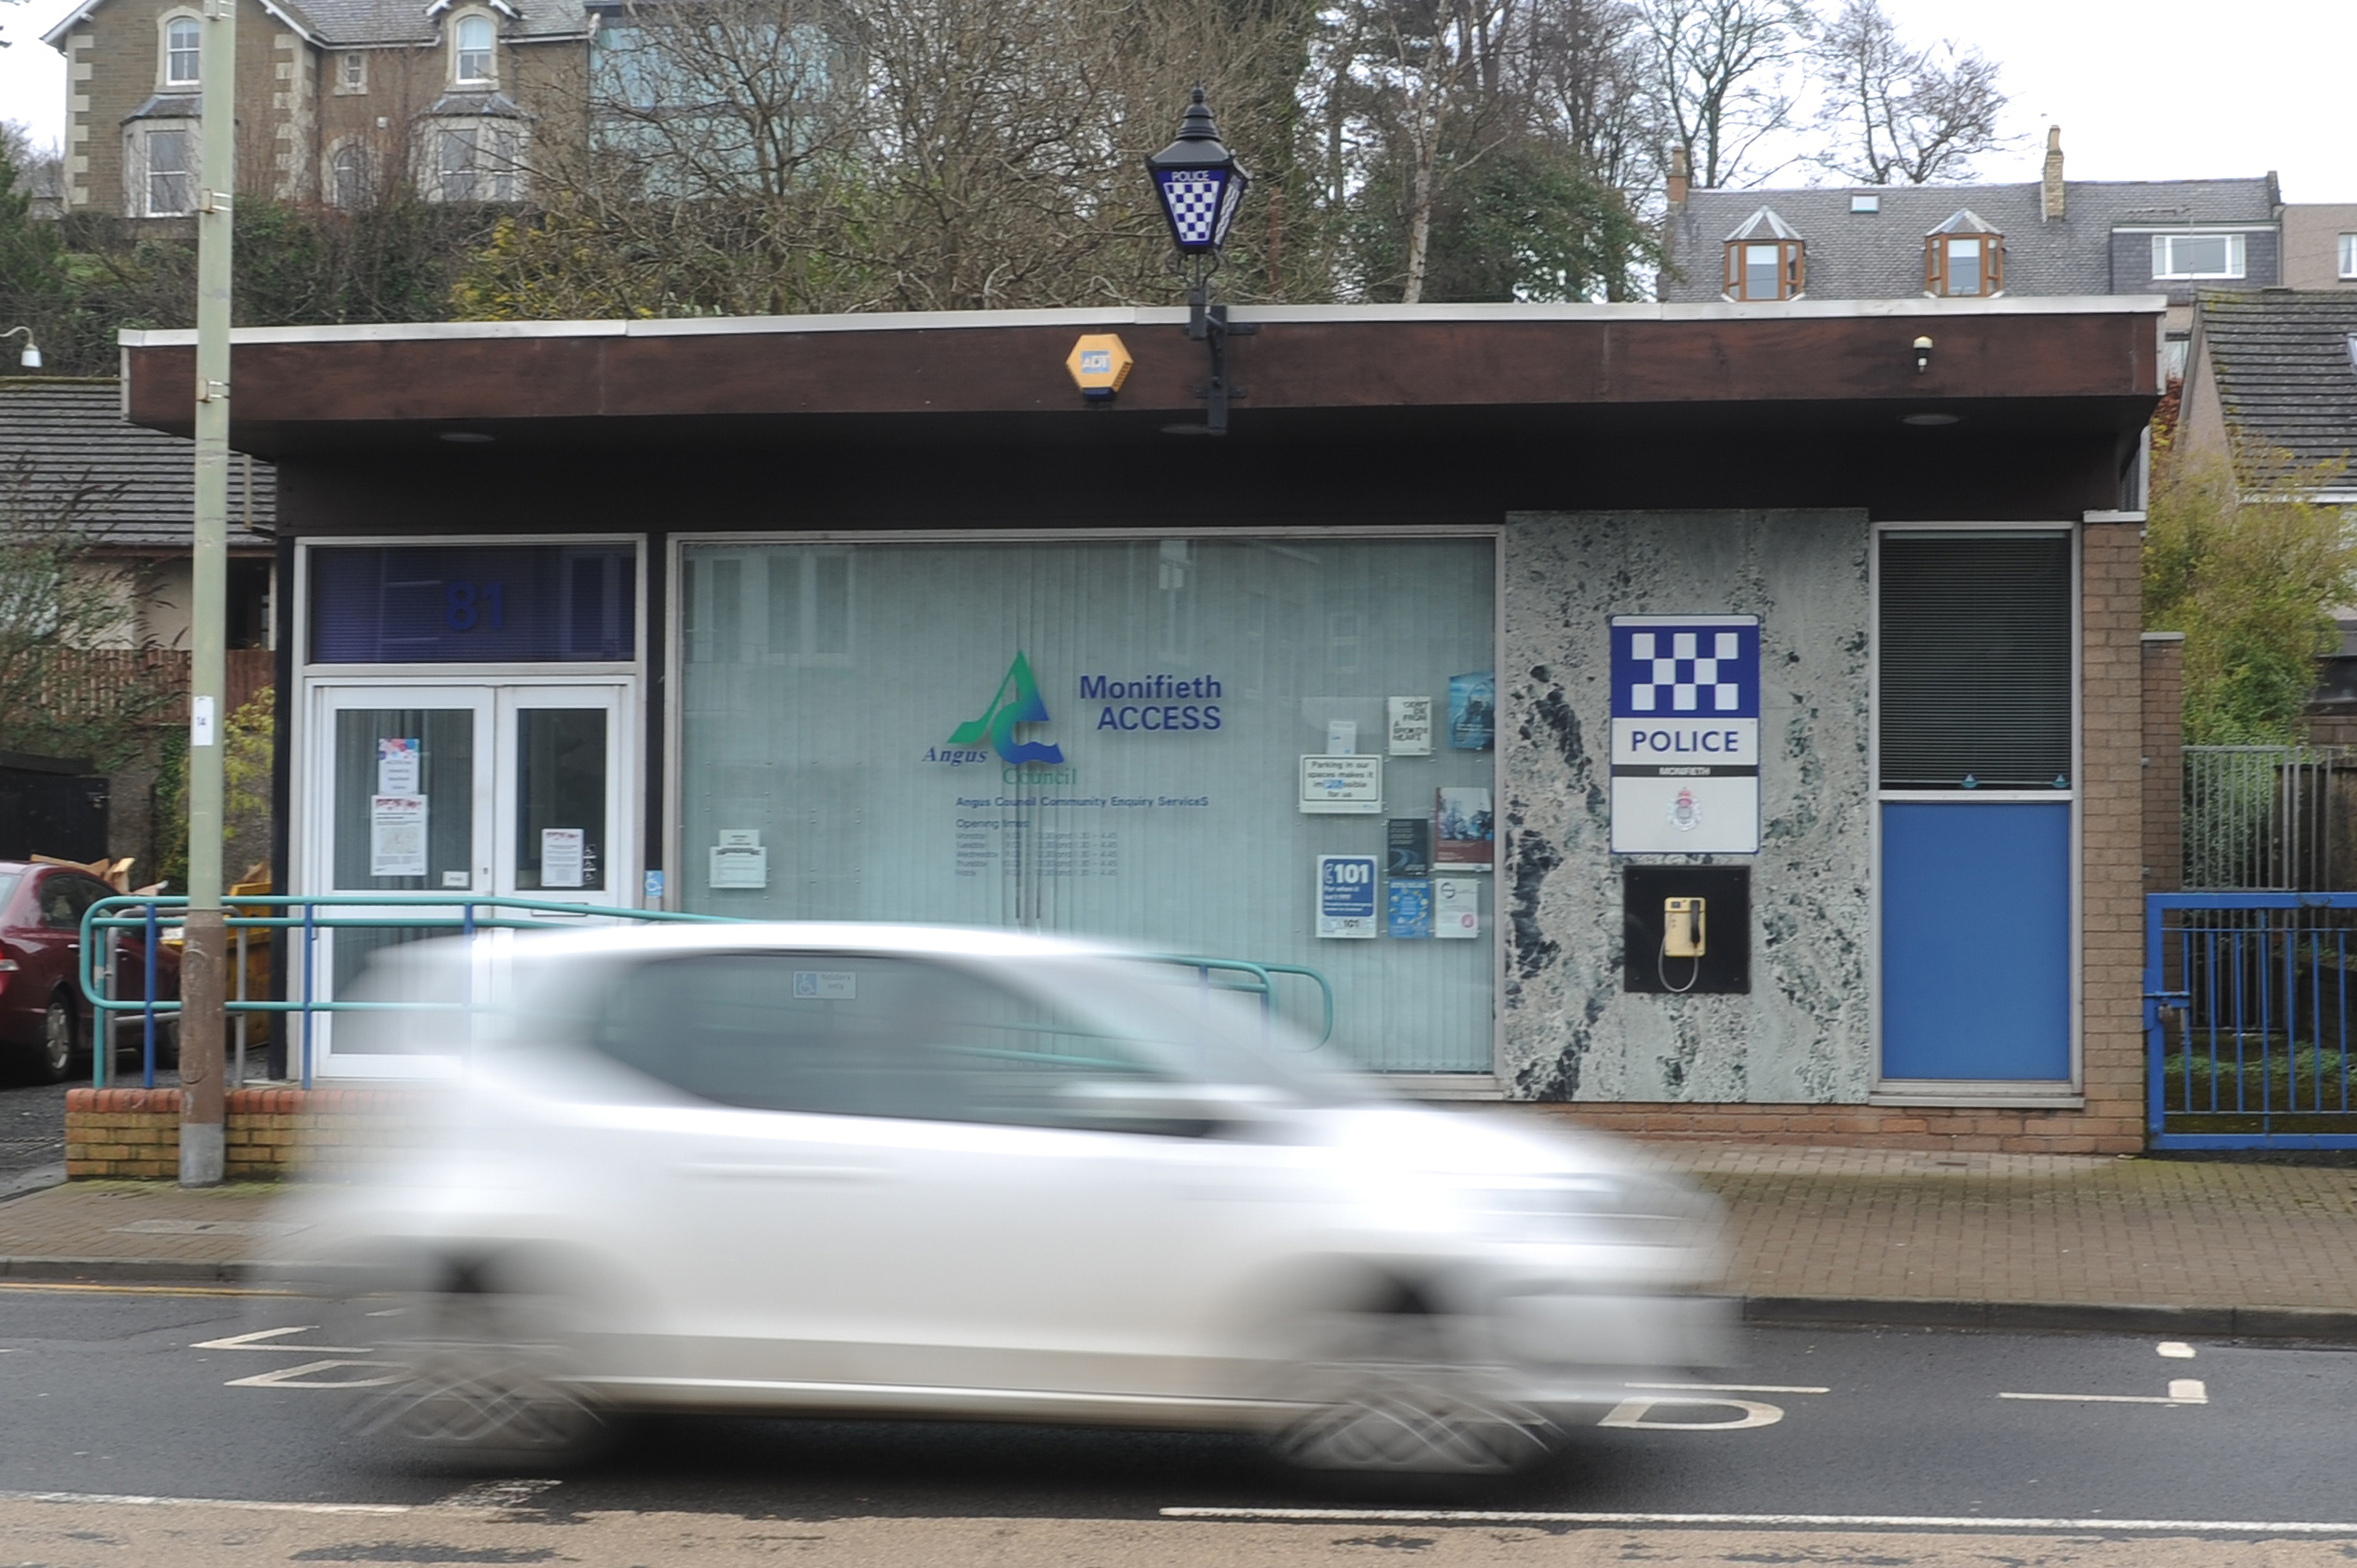 Monifieth police currently share a council Access office but may move into the local library.